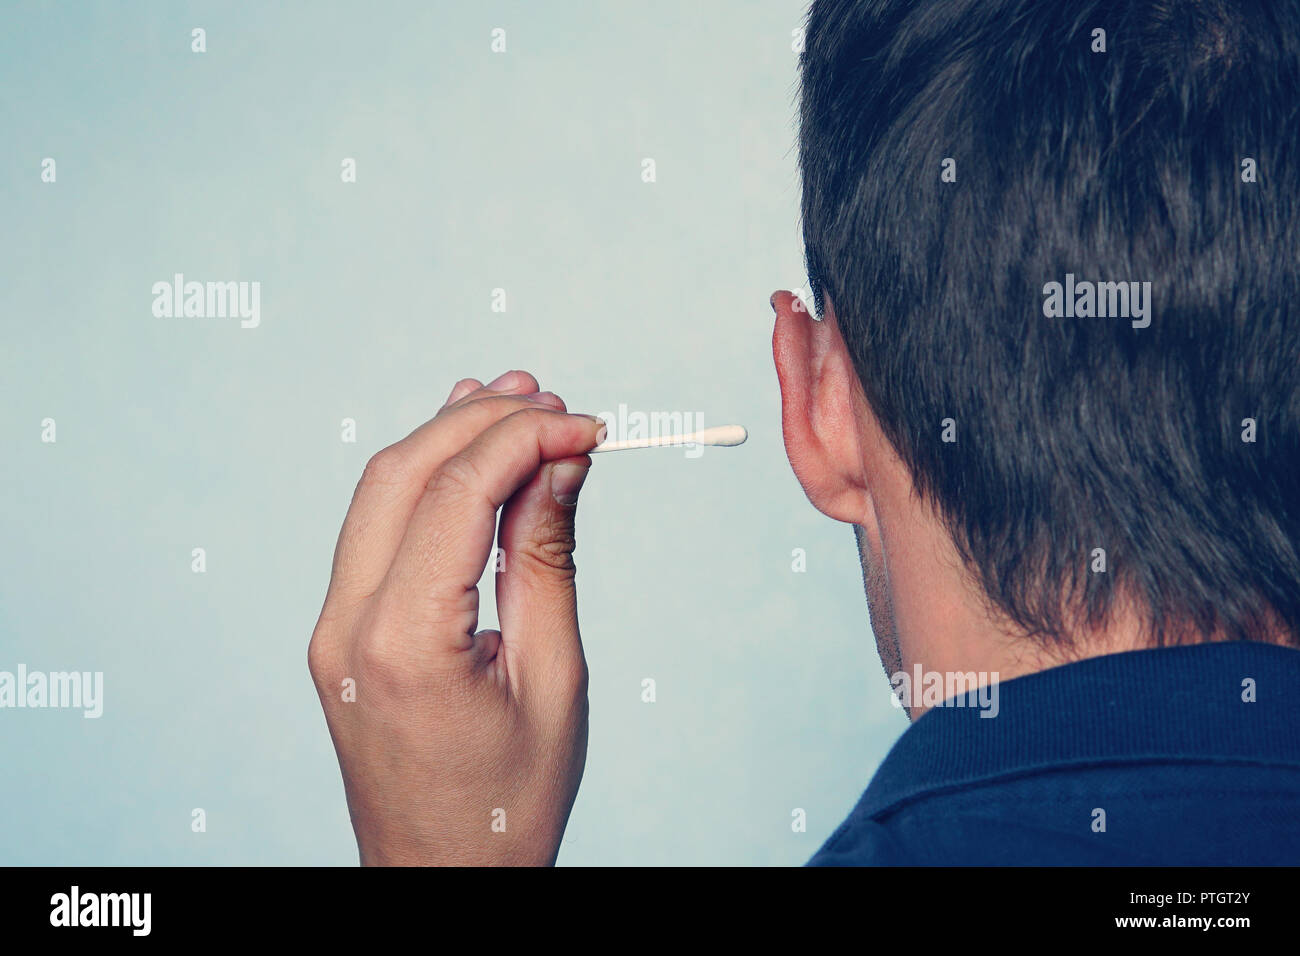 Happy man cleans his ear with a cotton swab close-up on blue background. - Stock Image